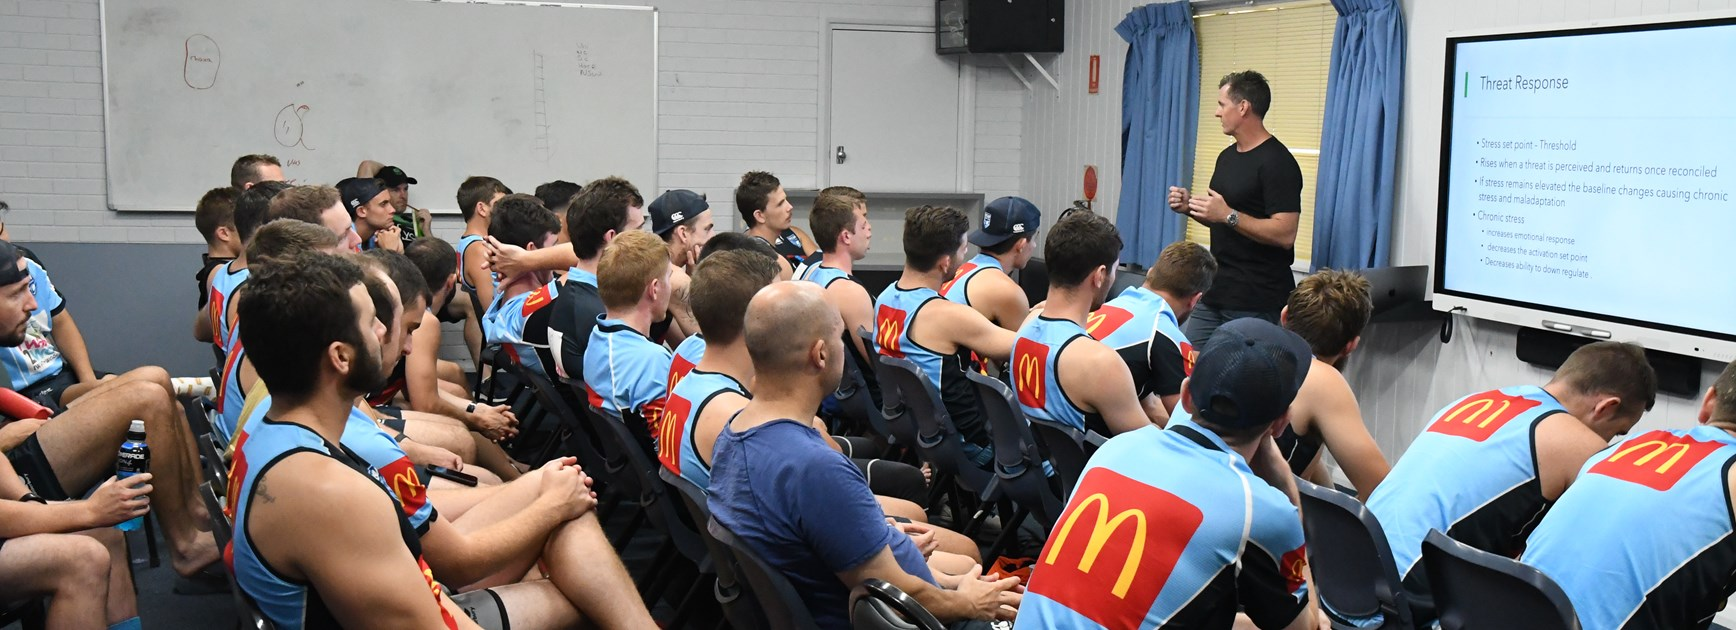 NSWRL Referees benefit from communication in camp